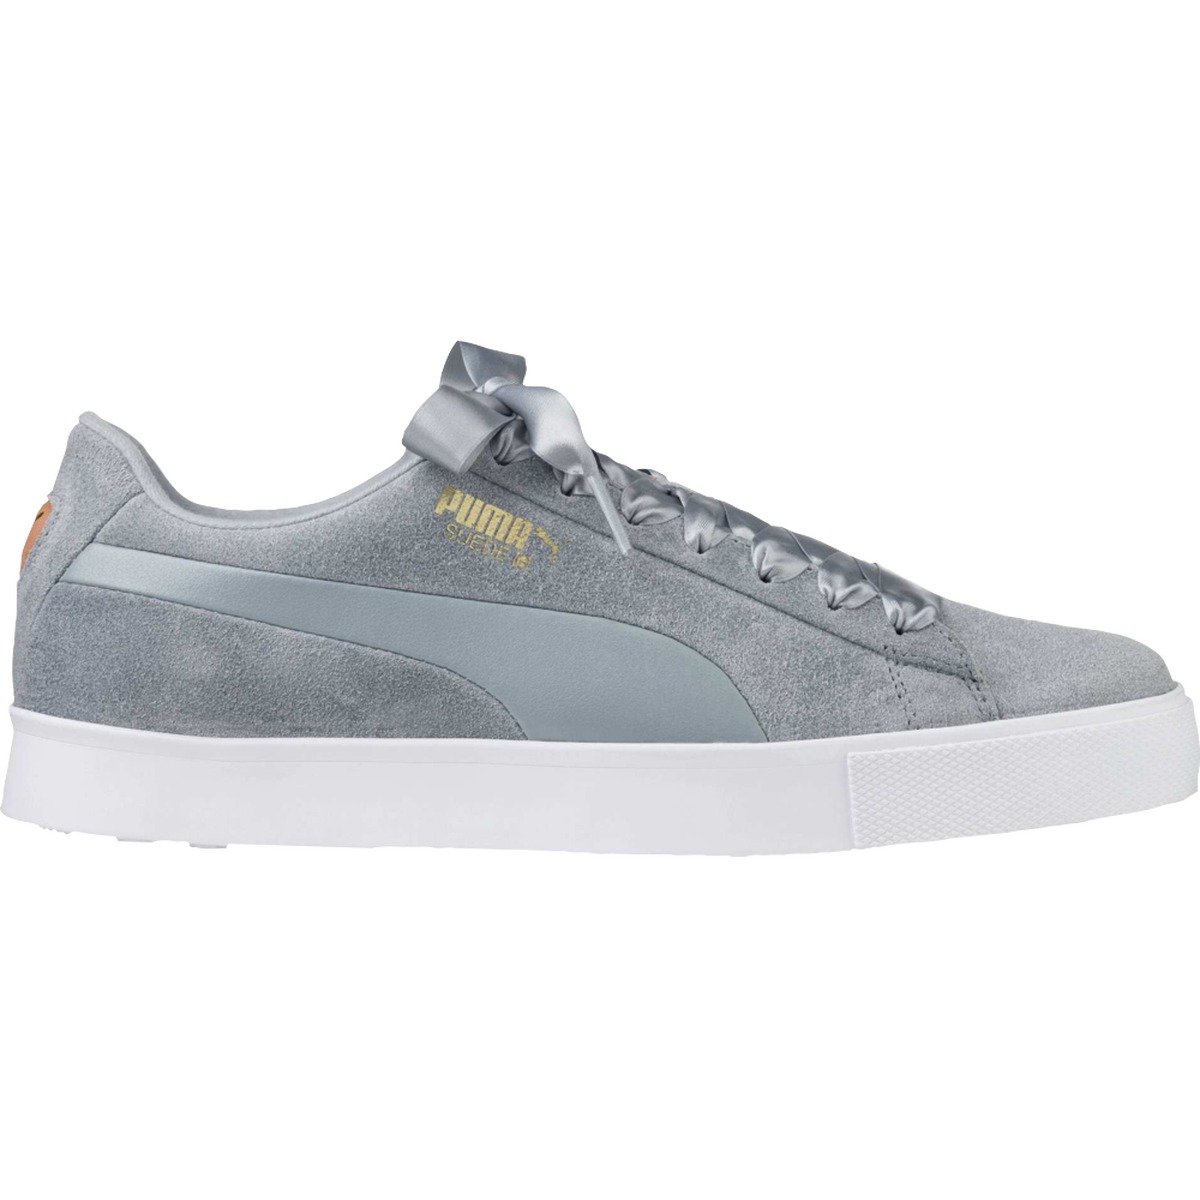 402b8fc4d3ba Images. PUMA Suede G Women  39 s Golf Shoe ...